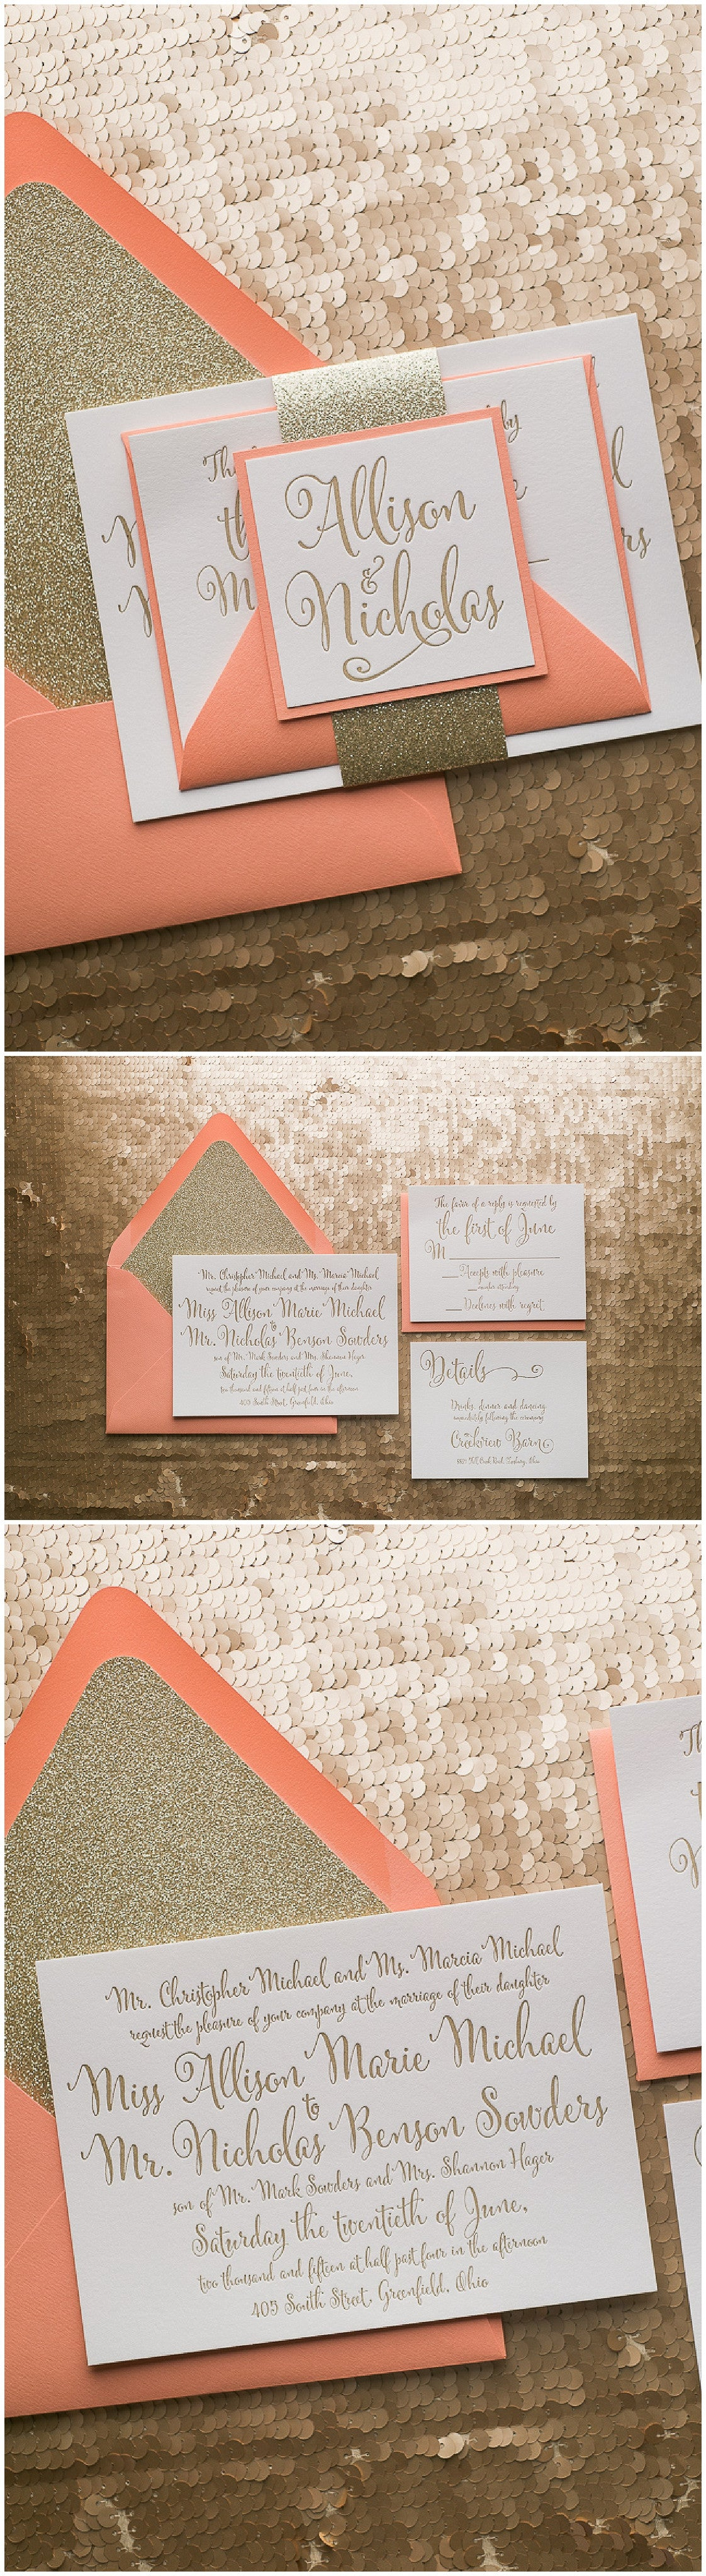 Wedding Invitation, Affordable Letterpress, Coral and Gold, Gold Glitter, Summer Wedding, Ellie Suite, Just Invite Me